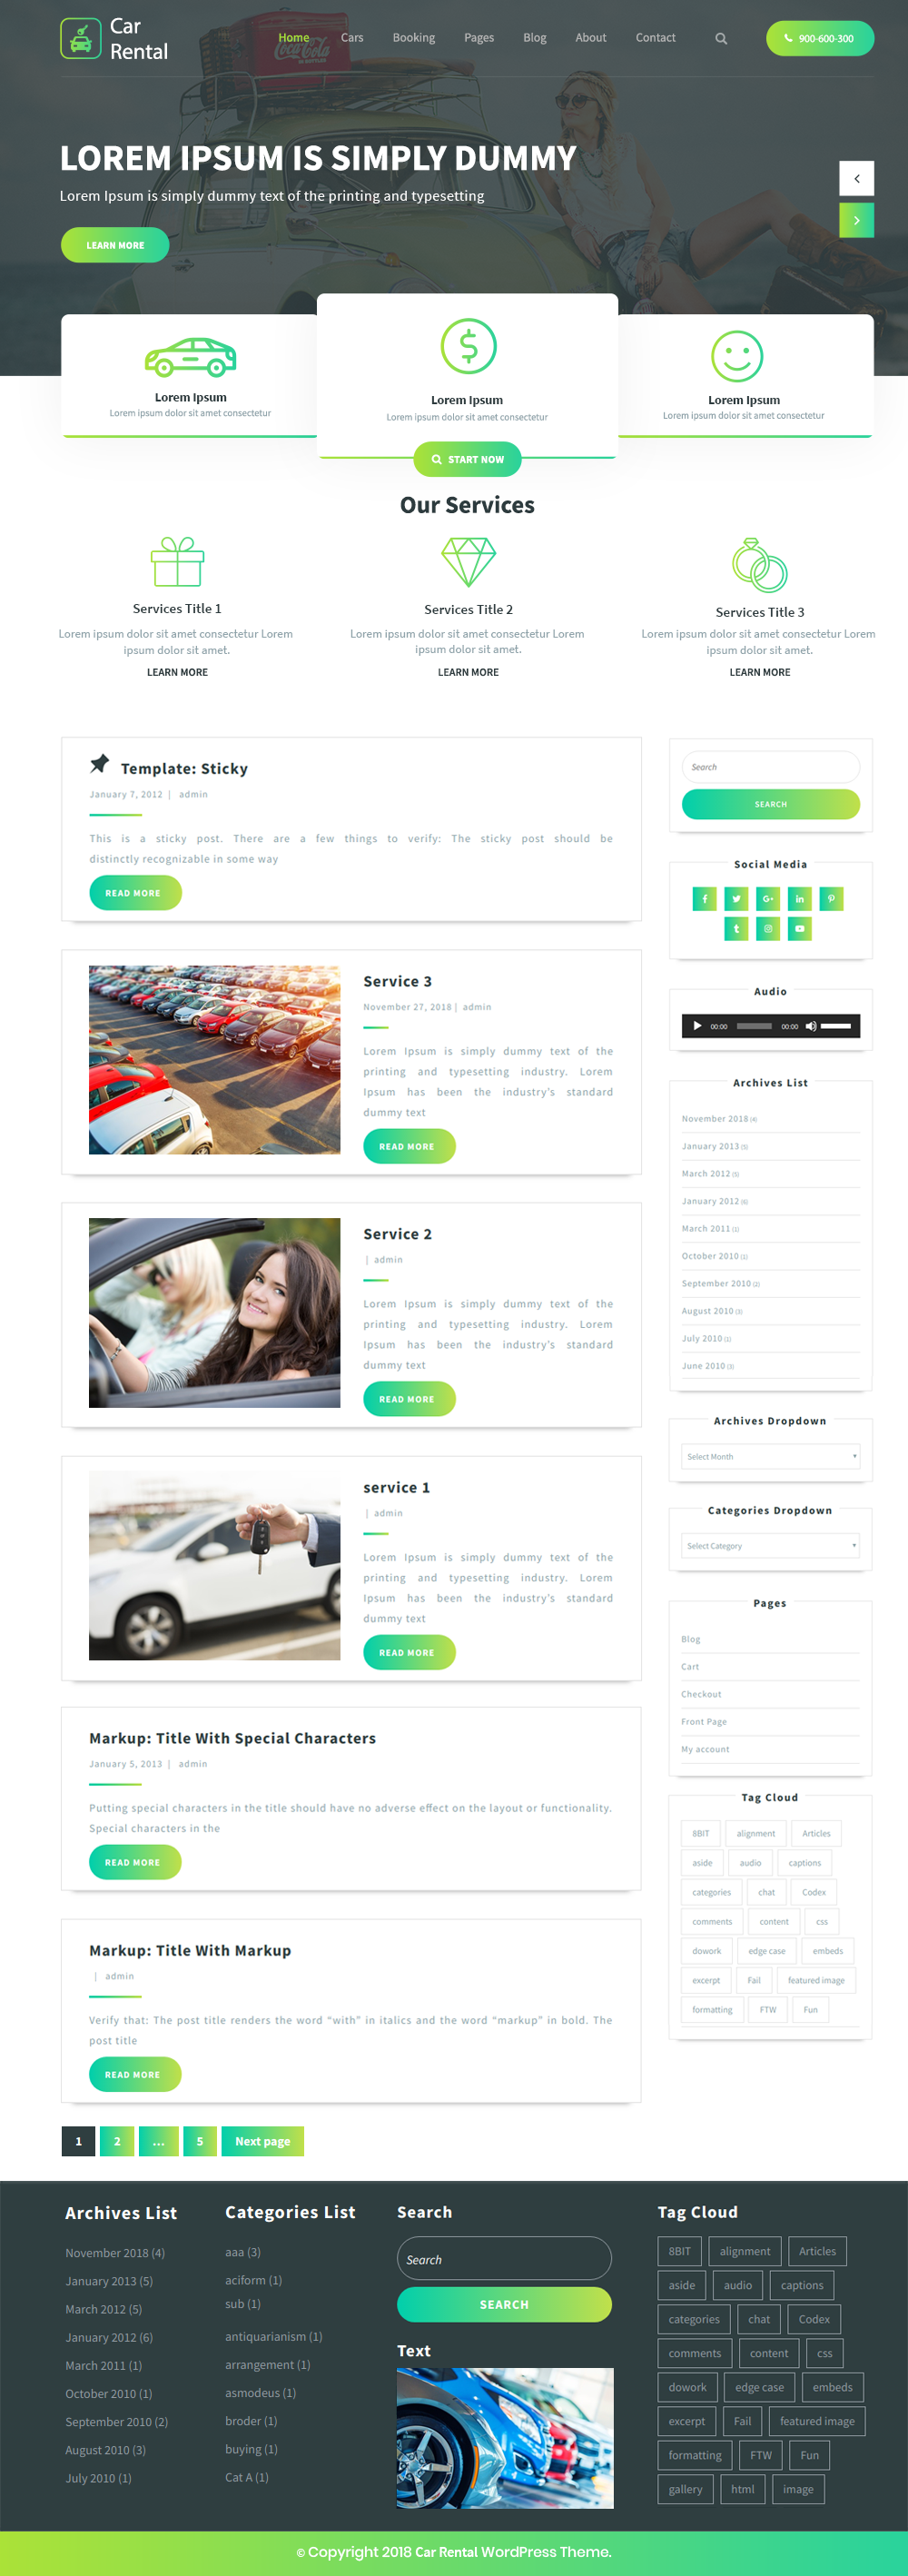 Free Car Rental WordPress Theme